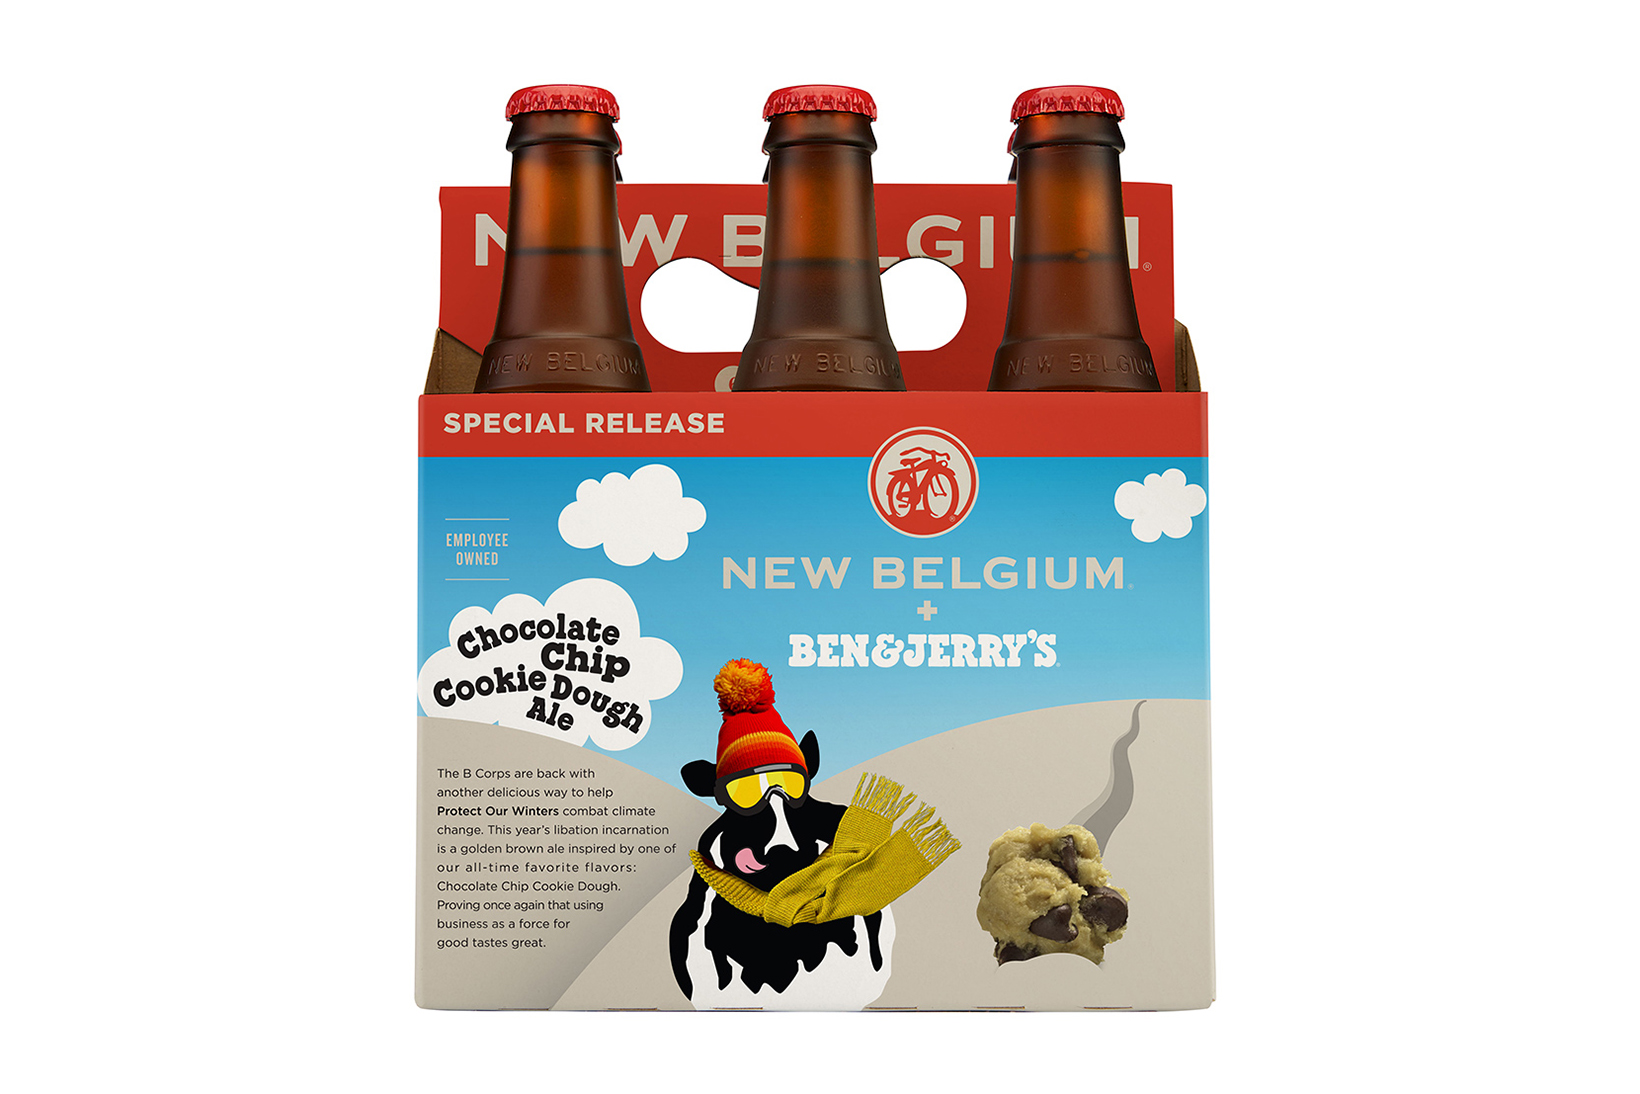 Ben & Jerry's & New Belgium Brewing Are Dropping More Ice Cream-Flavored Beer